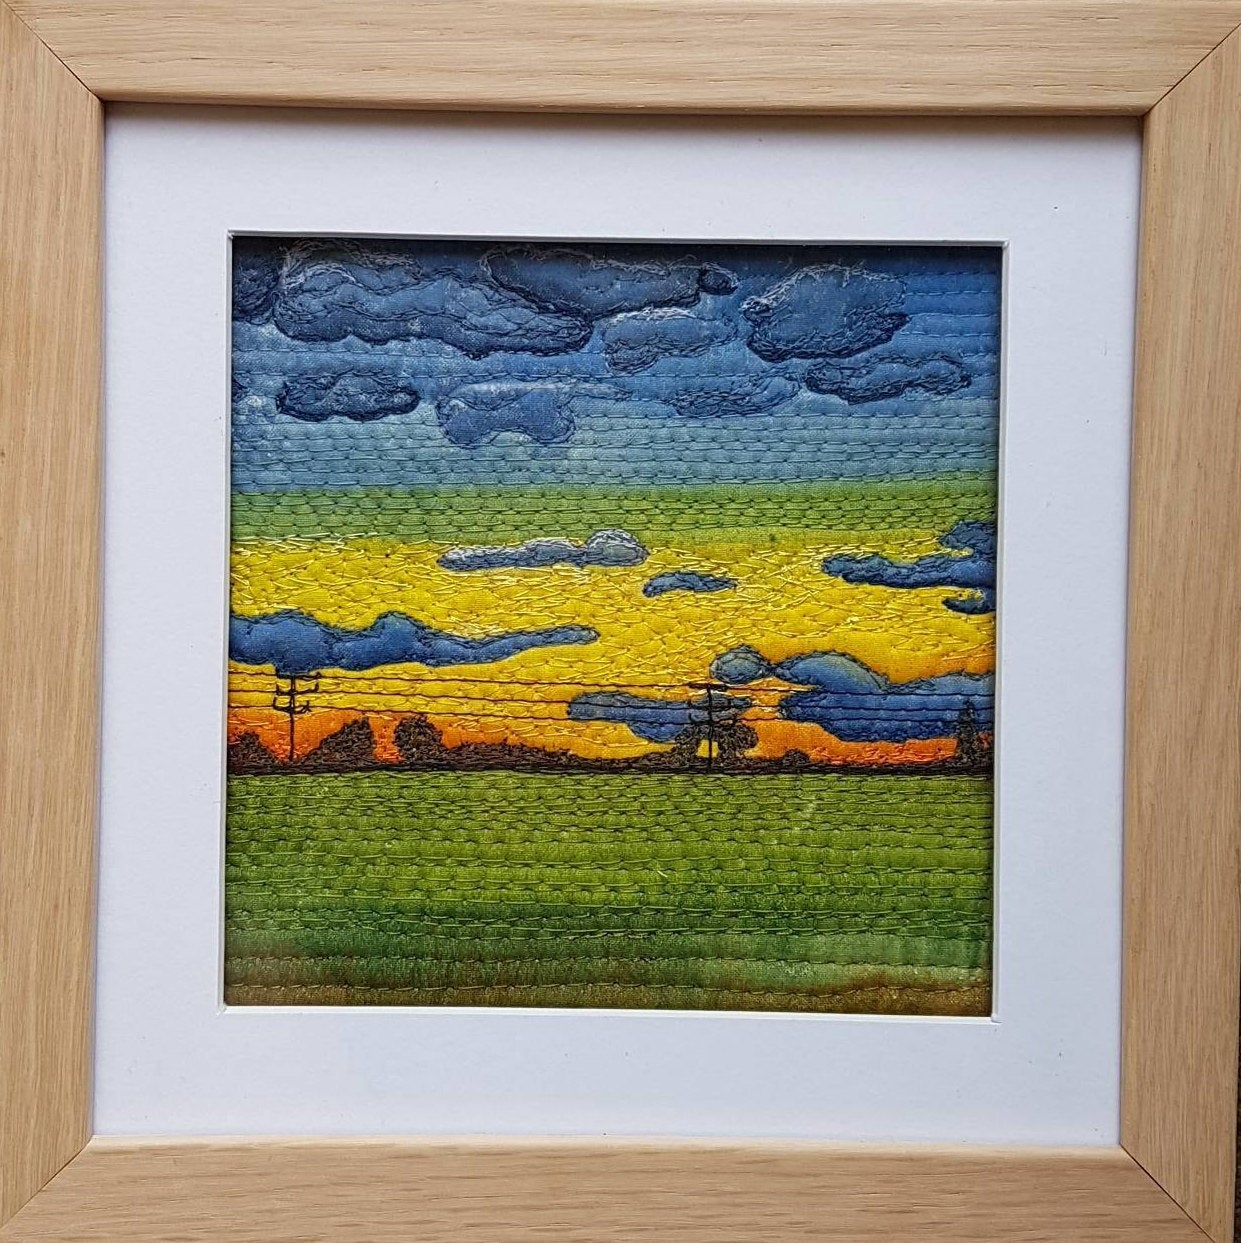 Ink and stitched Textile landscapes - Sunsets, Sunrises and storms